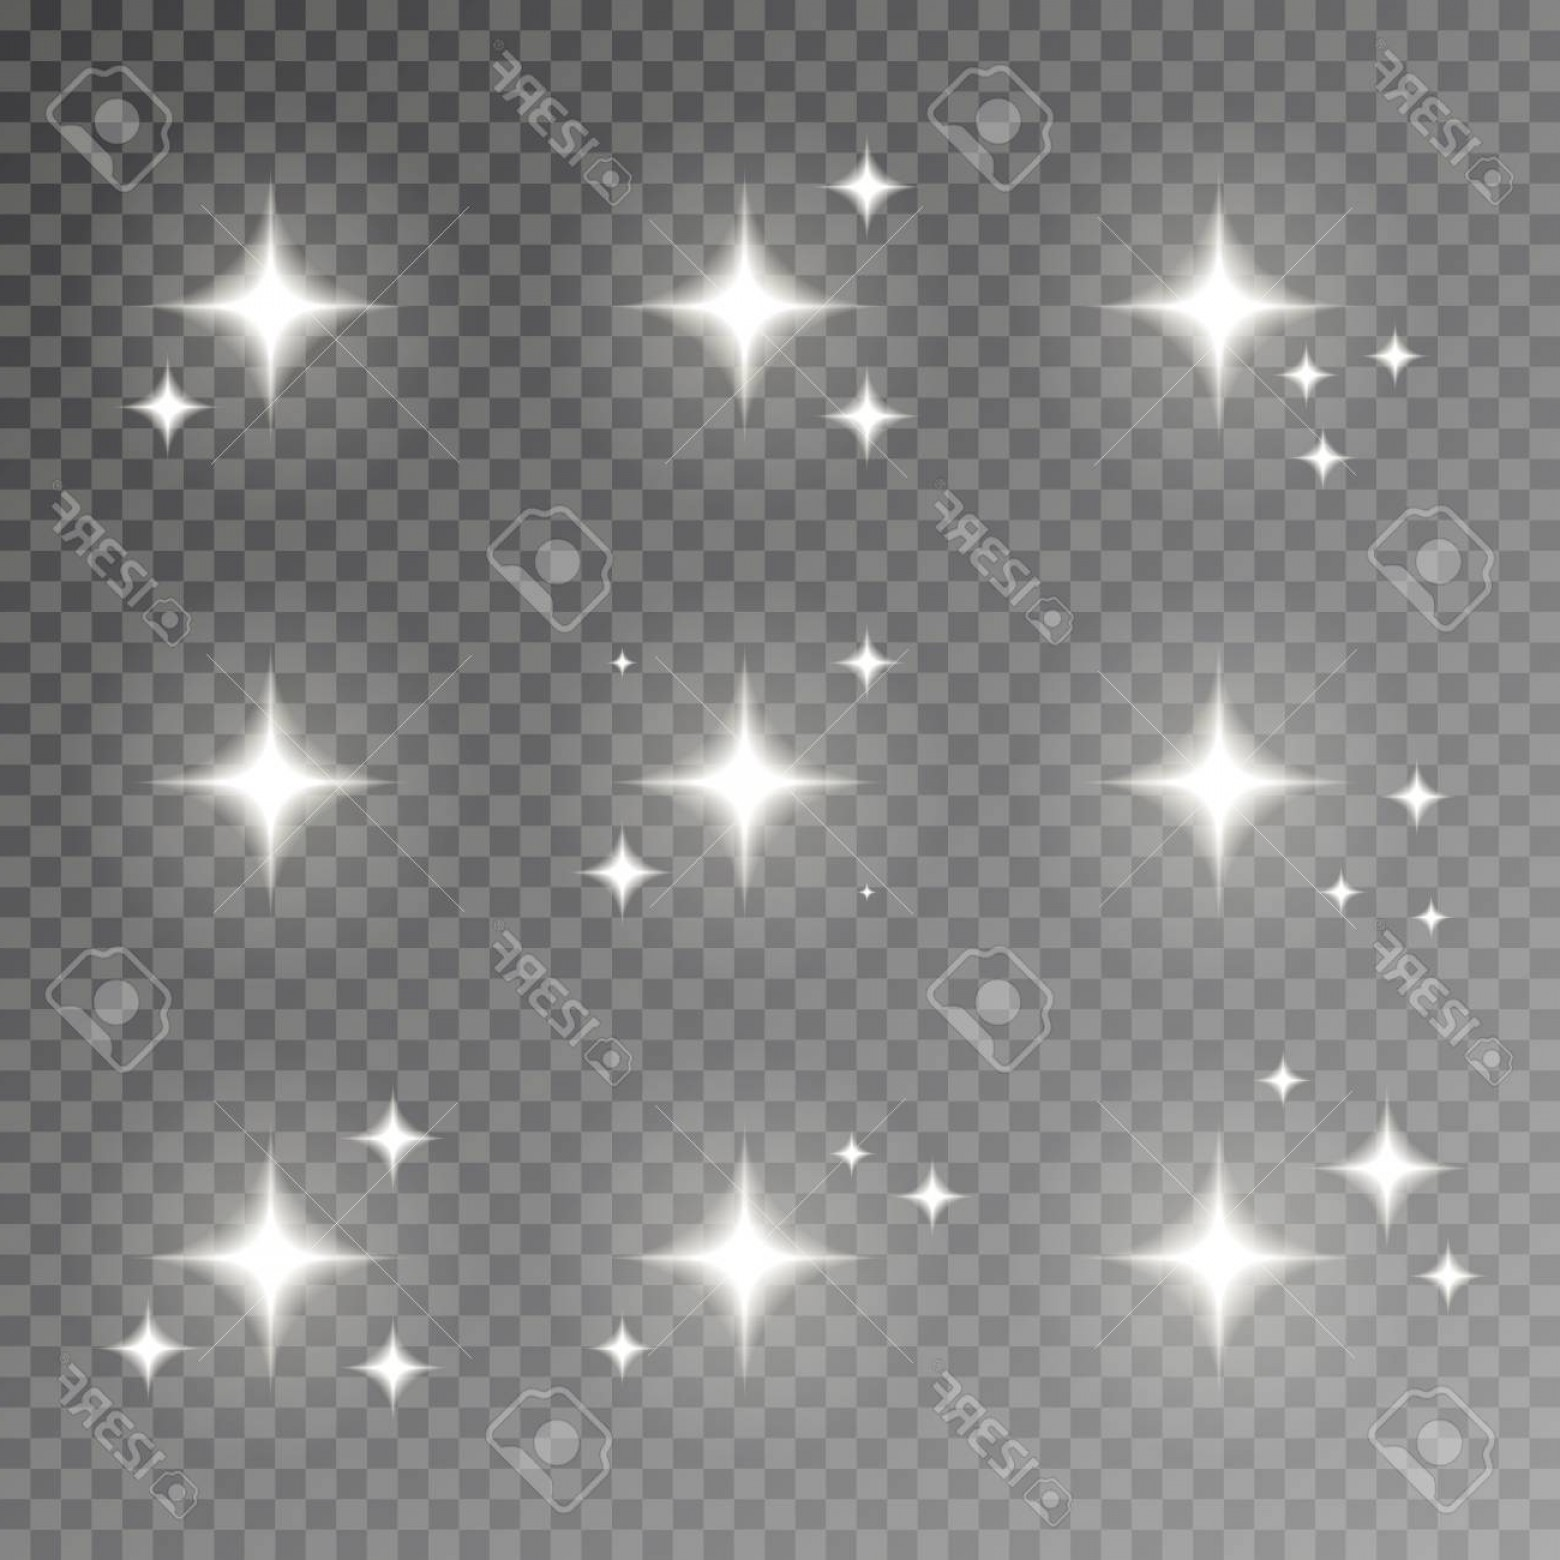 Twinkle Light Vector: Photostock Vector Twinkle Sparkle Vector Isolated On Transparent Background Flash Light Camera Effect Glare Lens Colle